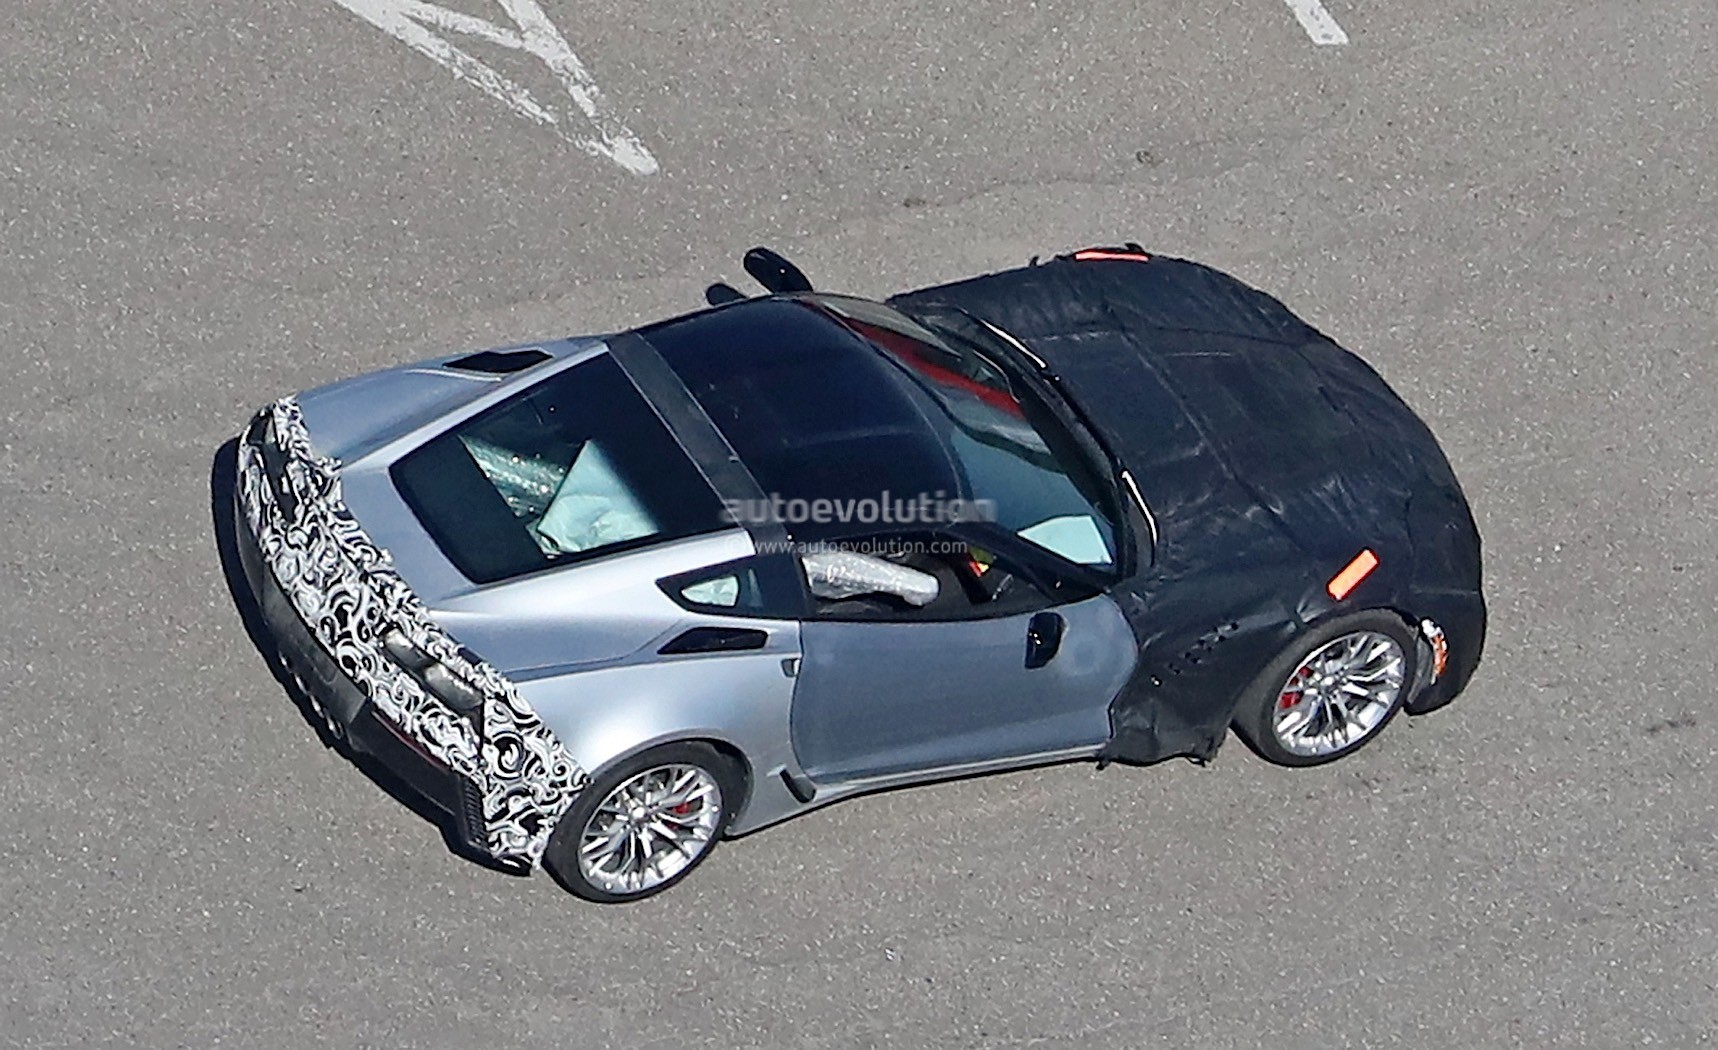 Chevrolet Of Milford >> 2018 Chevrolet Corvette ZR1 Spied Up Close at GM Milford Proving Ground - autoevolution